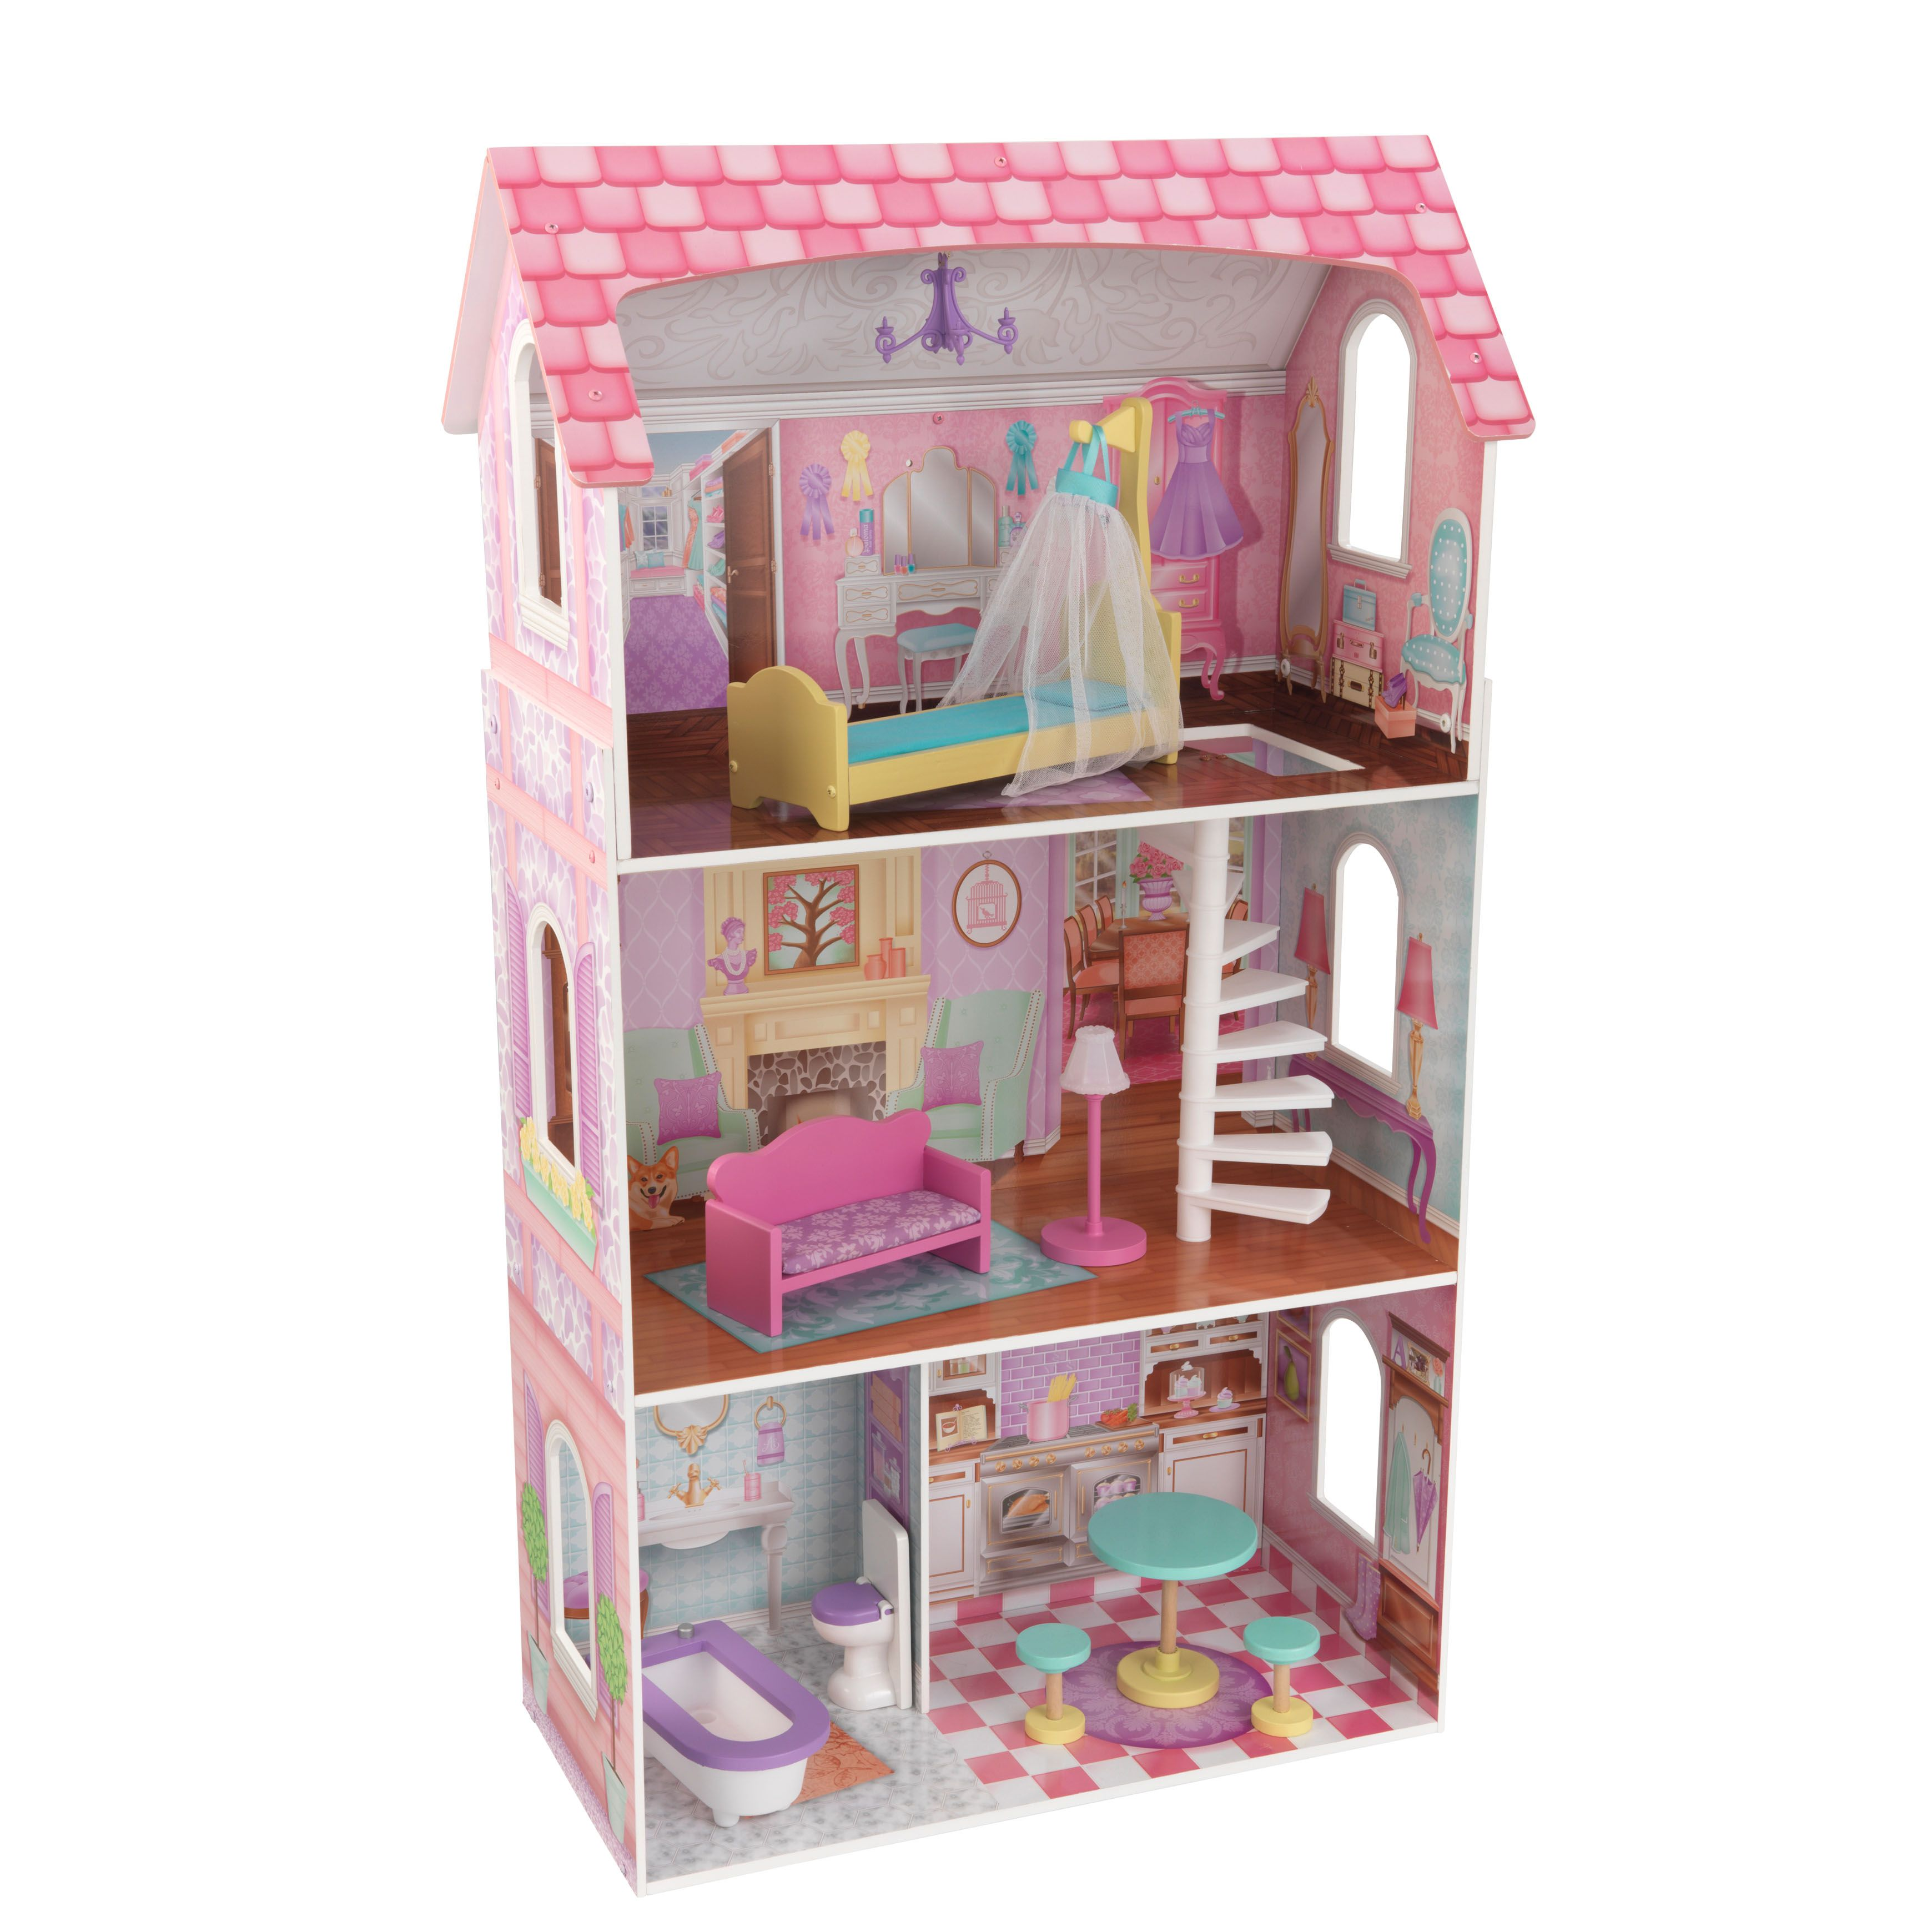 Penelope Dollhouse By Kidkraft New In Store Just Arrived In